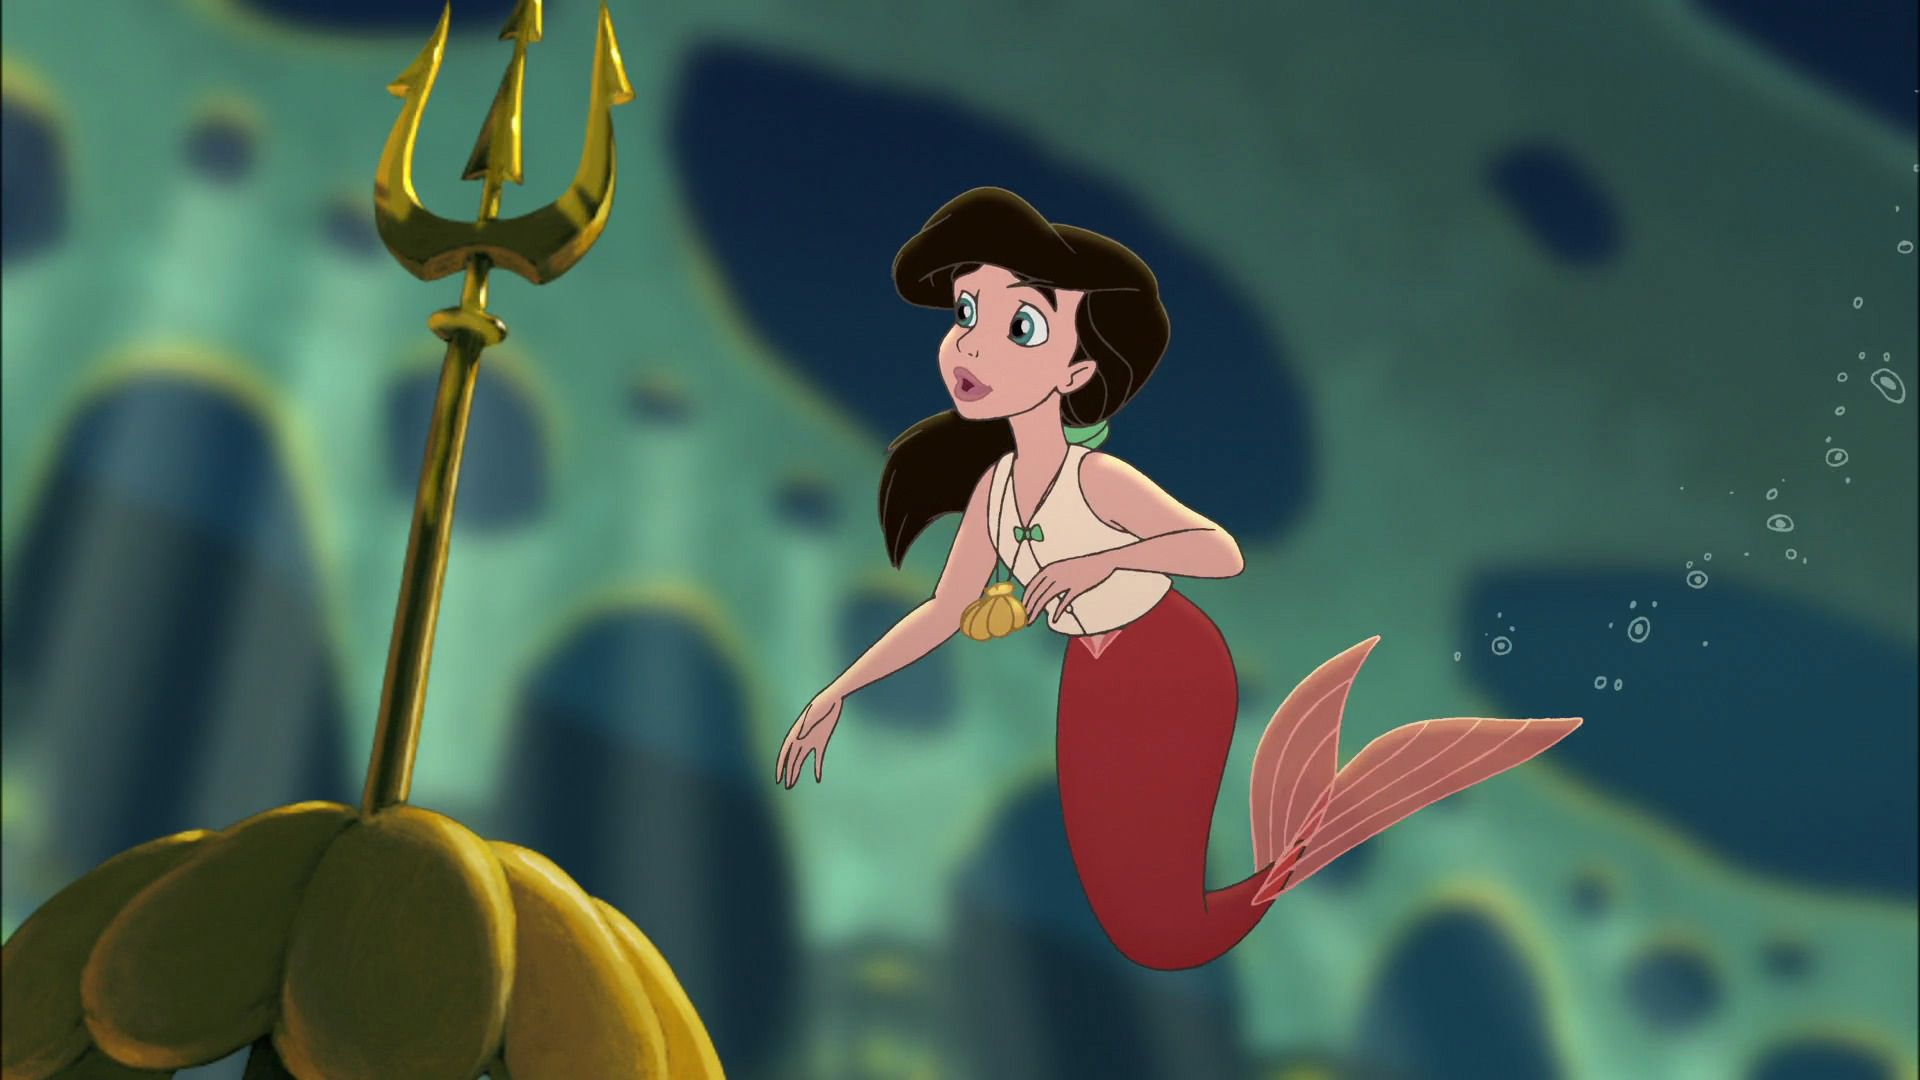 Image petite sirène 2 retour océan little mermaid return sea disney disneytoon